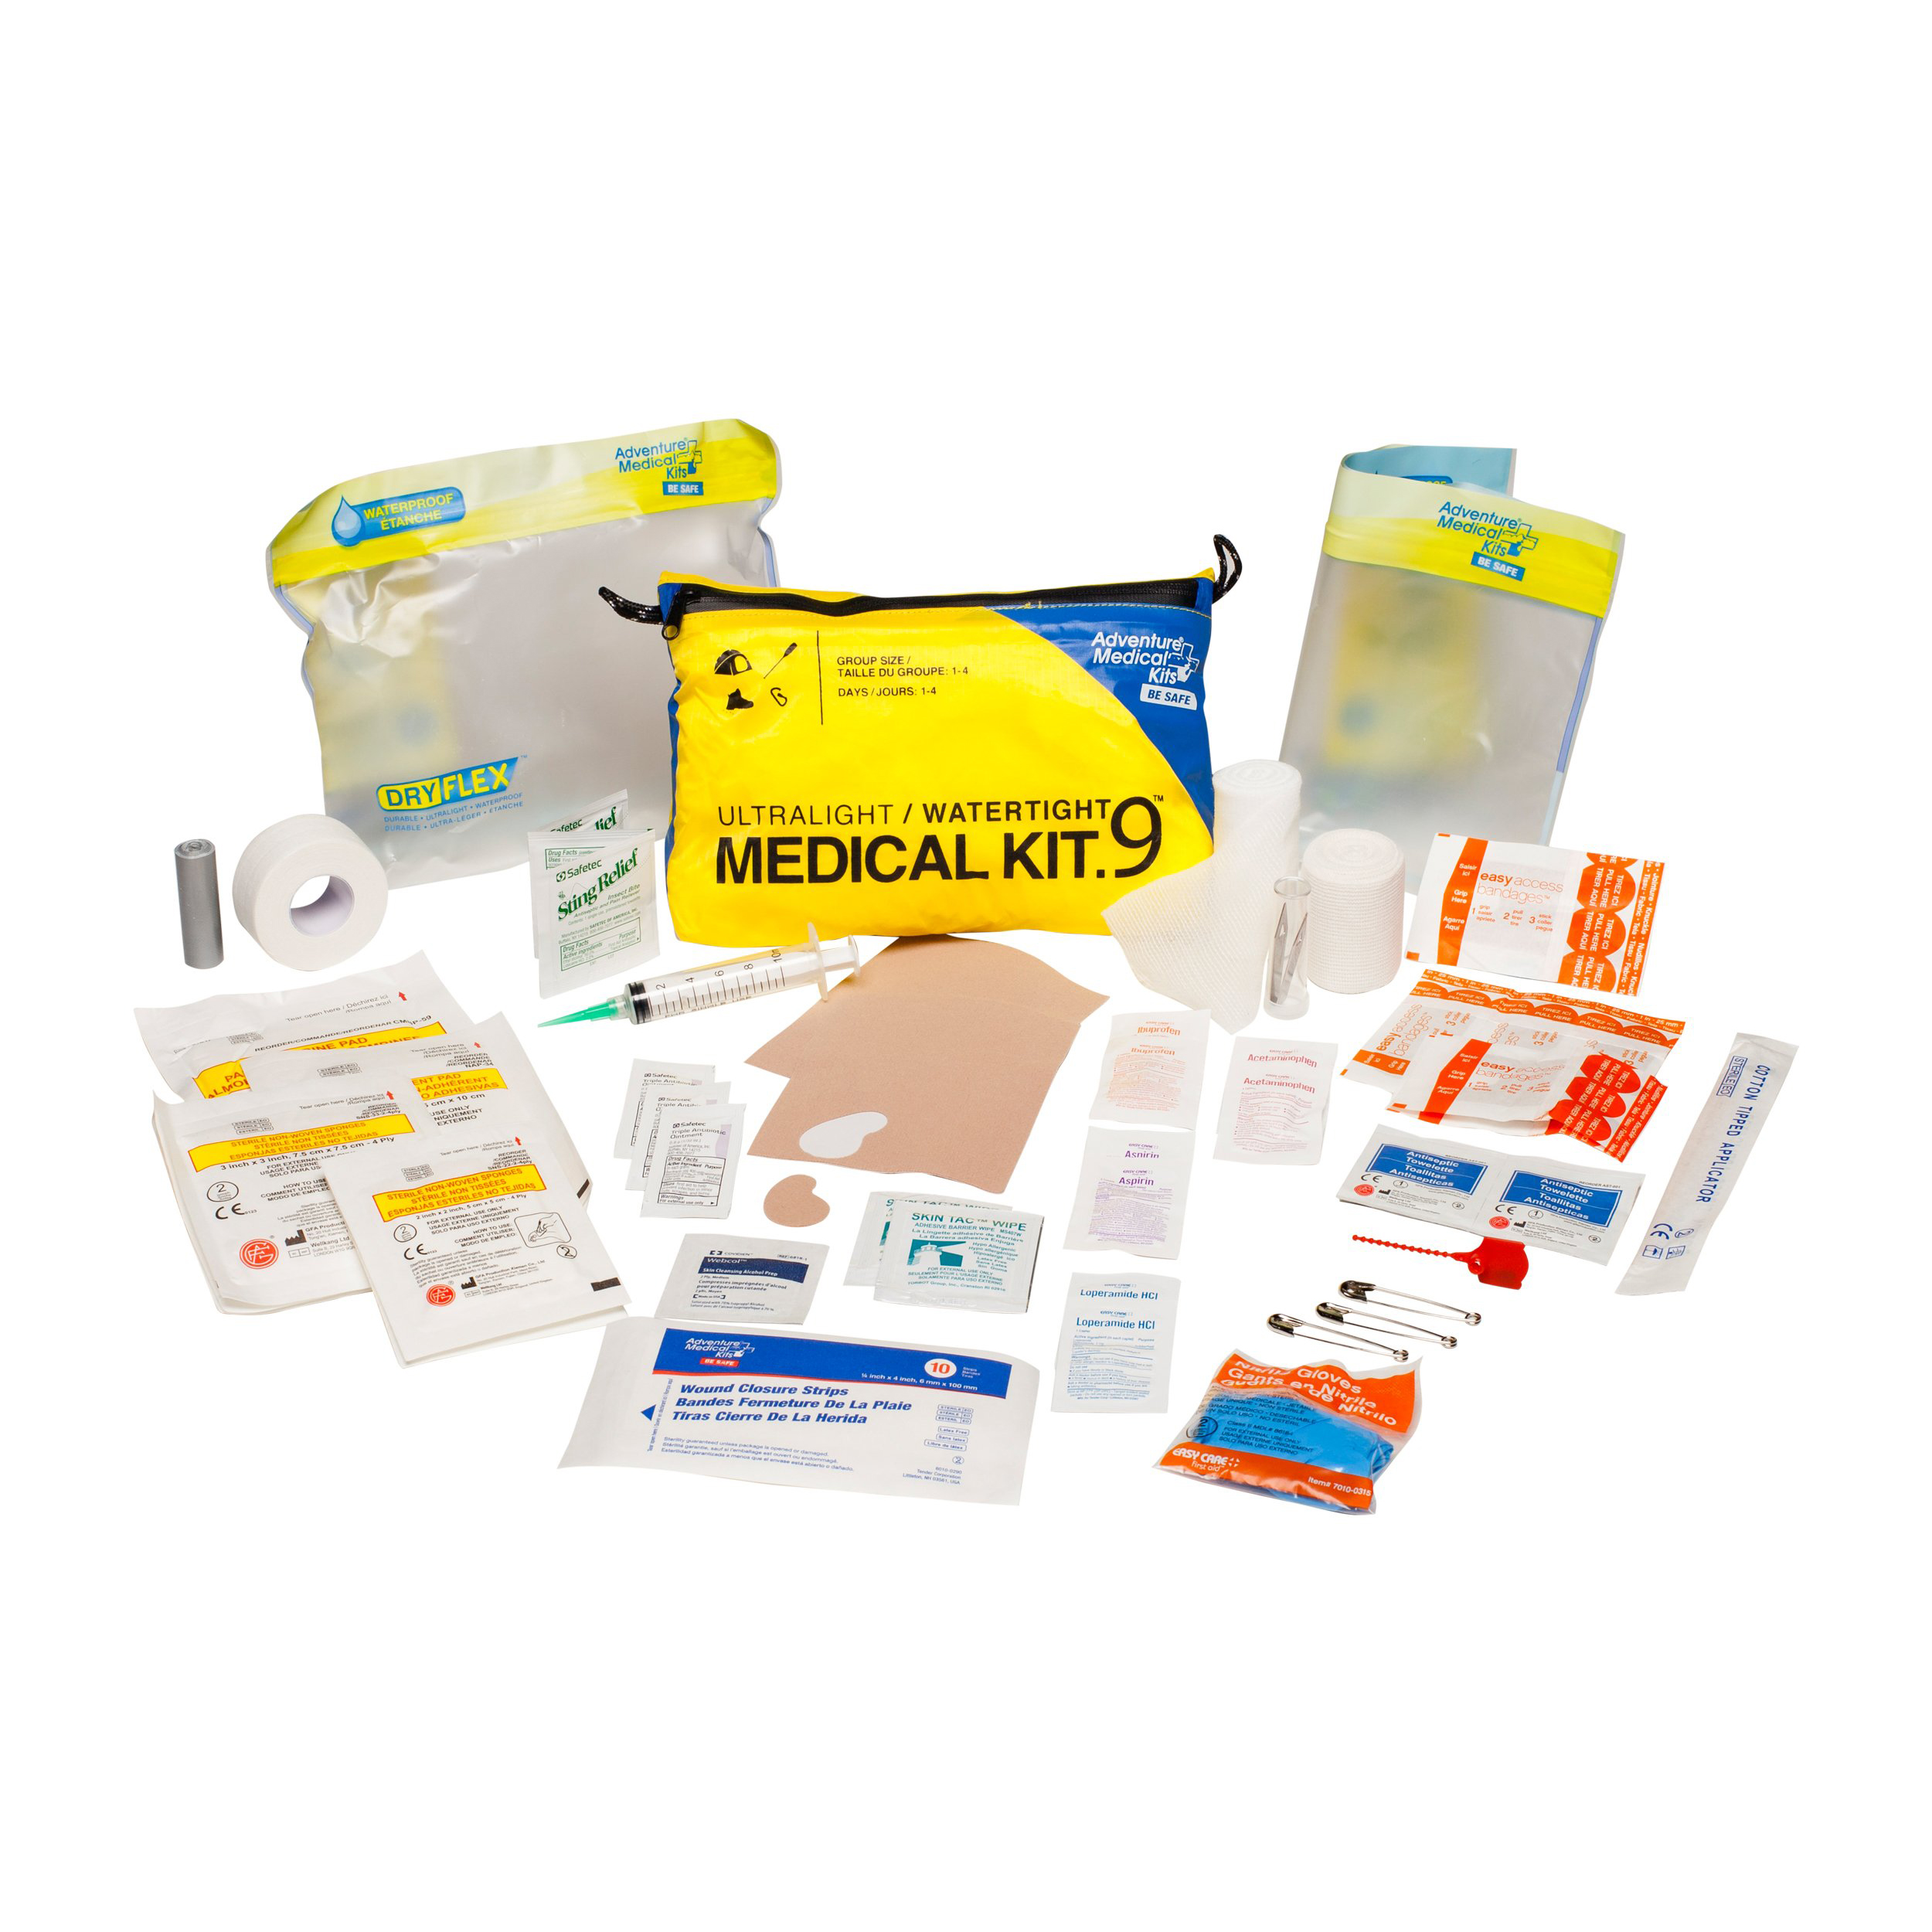 5 Best First Aid Kit for Hikers and Backpackers